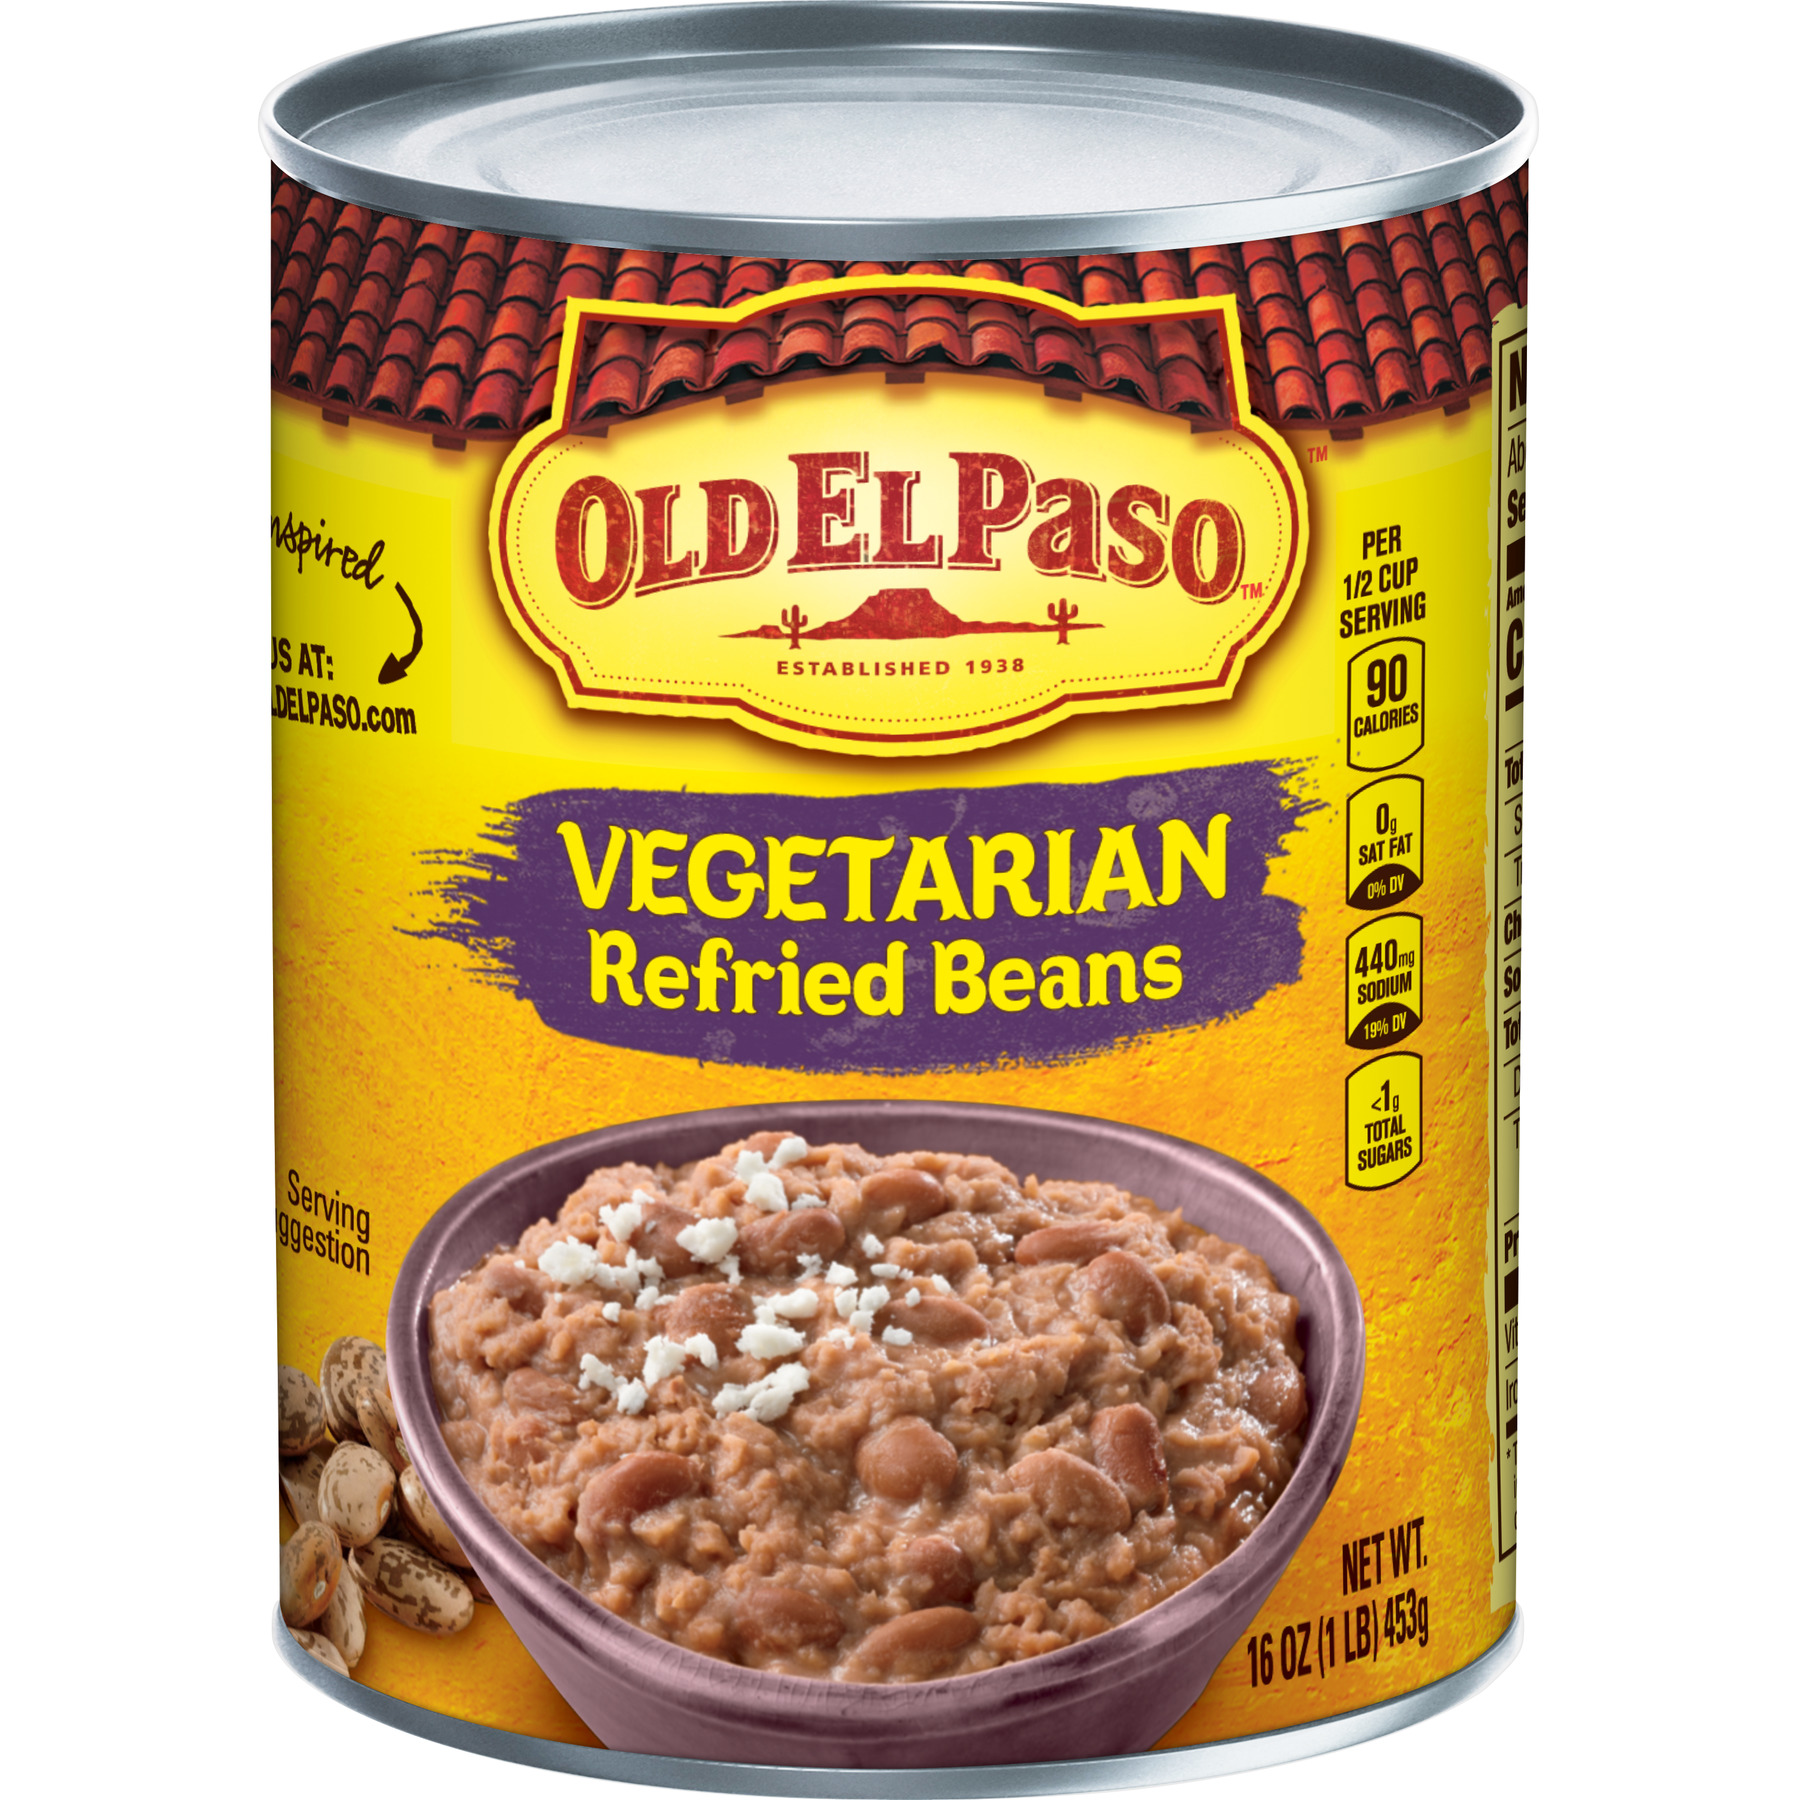 Old El Paso Vegetarian Refried Beans, 16 oz Can